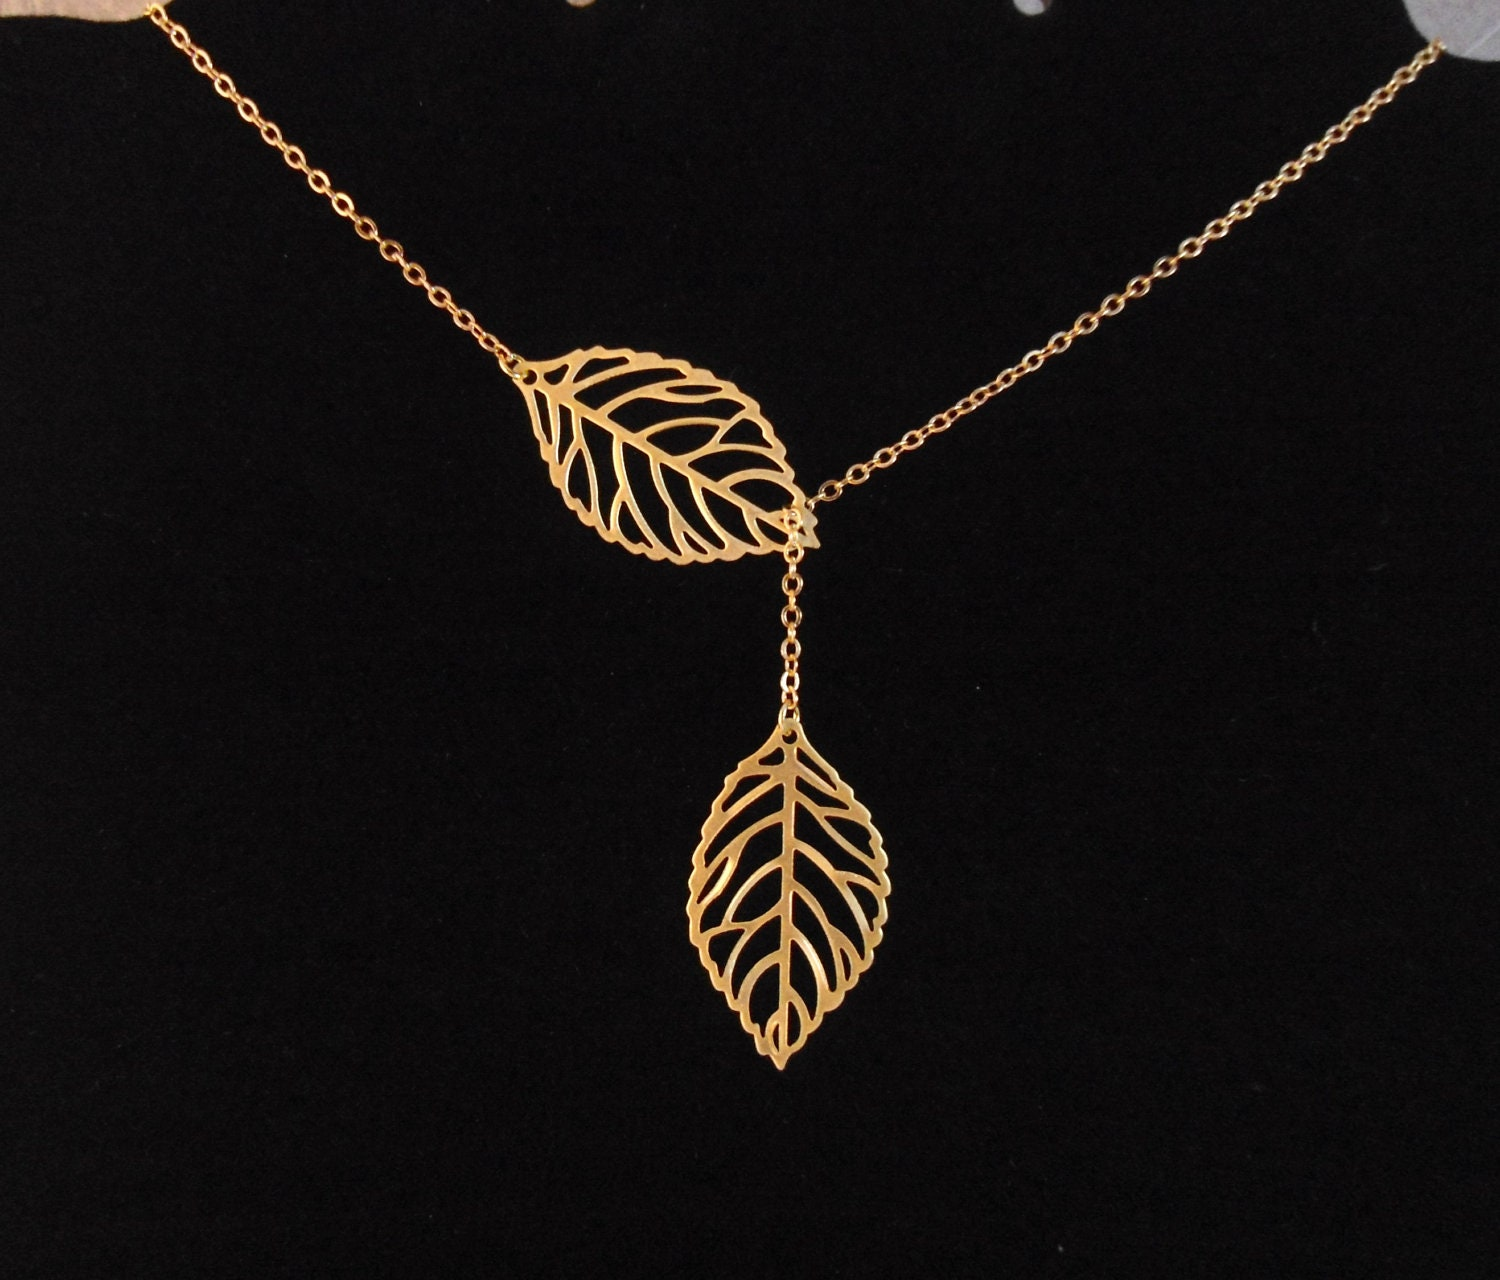 fashion accessoires leaf party silver green jewelry leaves round wholesale plated product women pendant theme shaped necklace girls christmas charms